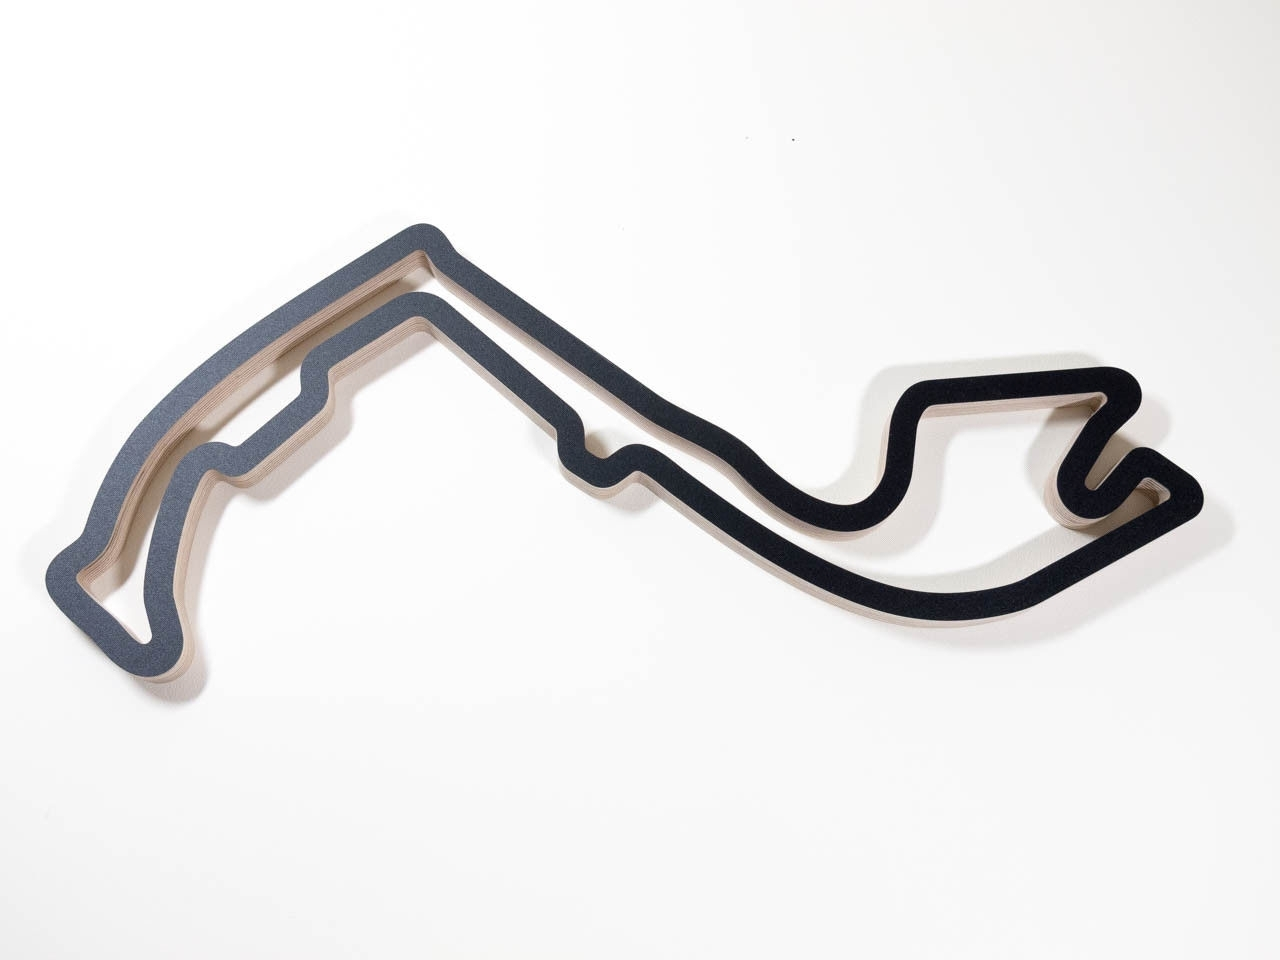 Monaco F1 Grand Prix Motorsport Racing Track Wall Art Wooden For Most Recent Race Track Wall Art (View 9 of 20)